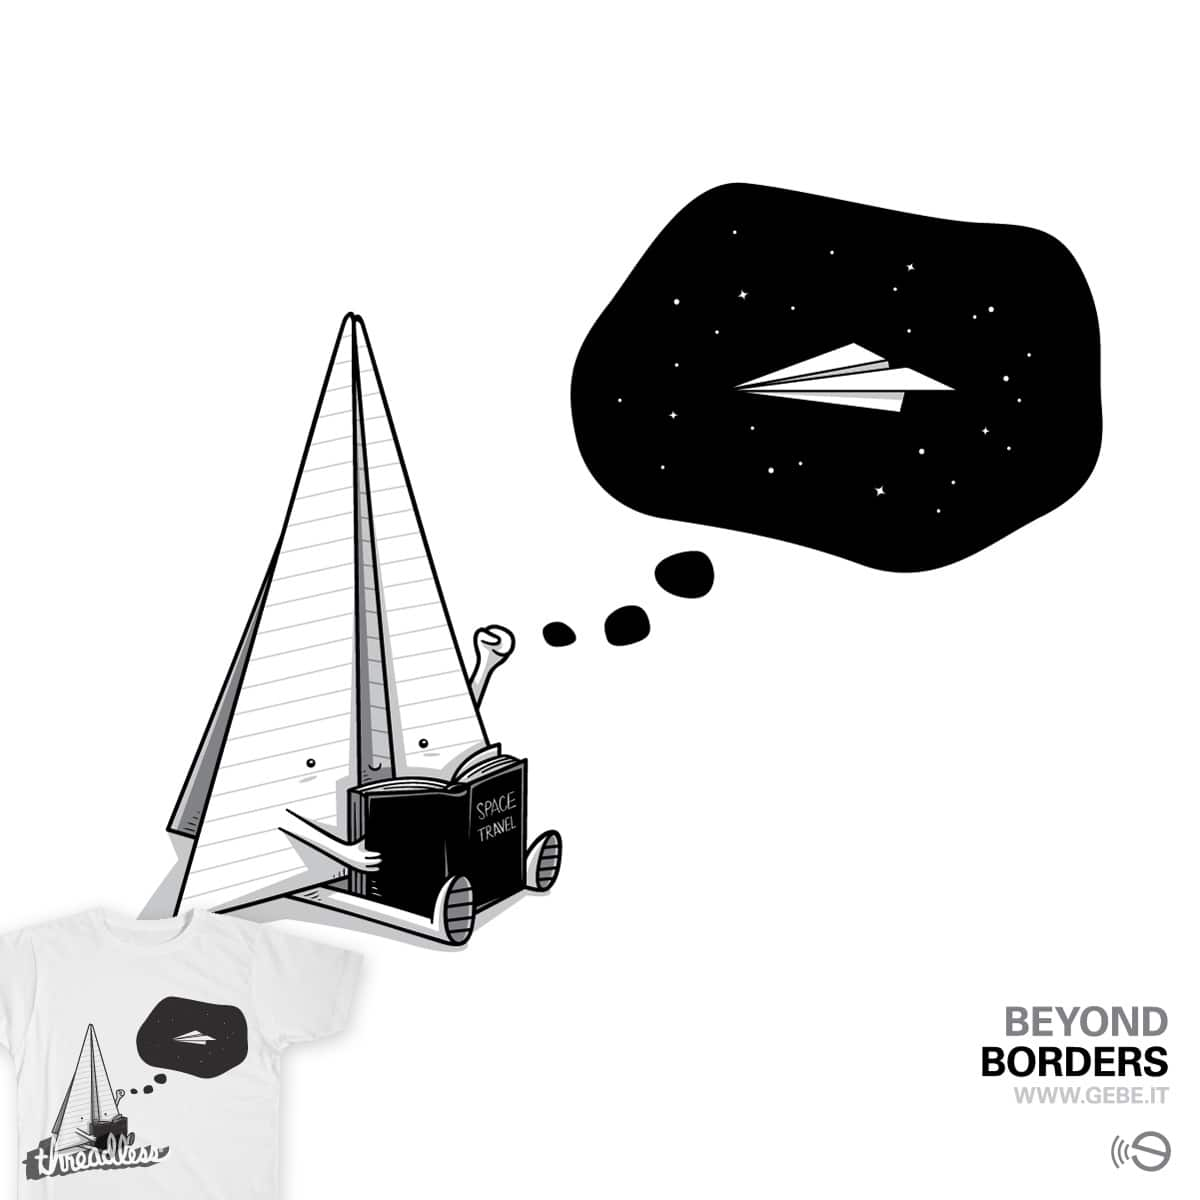 Beyond borders by gebe on Threadless